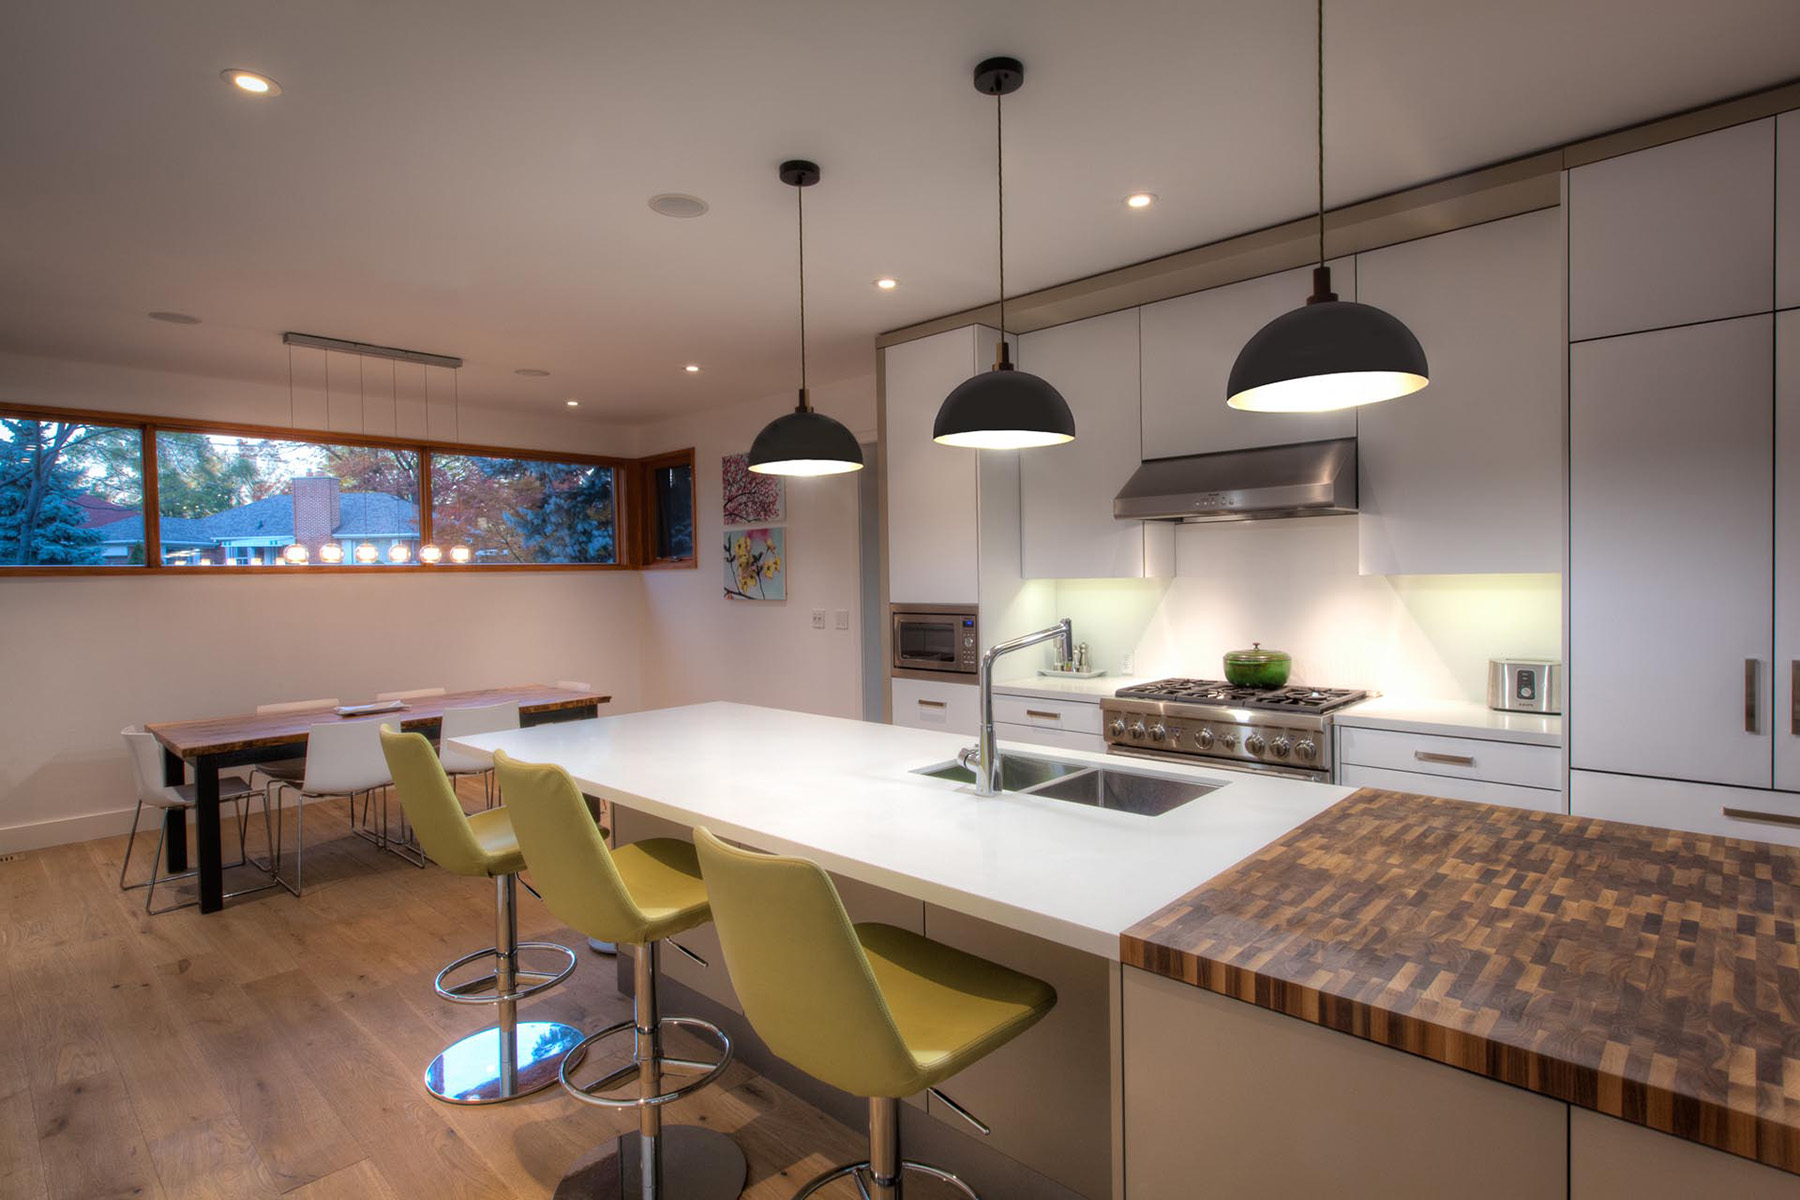 Modern kitchen design with panelled appliances and quartz island with sink and end grain butcher block